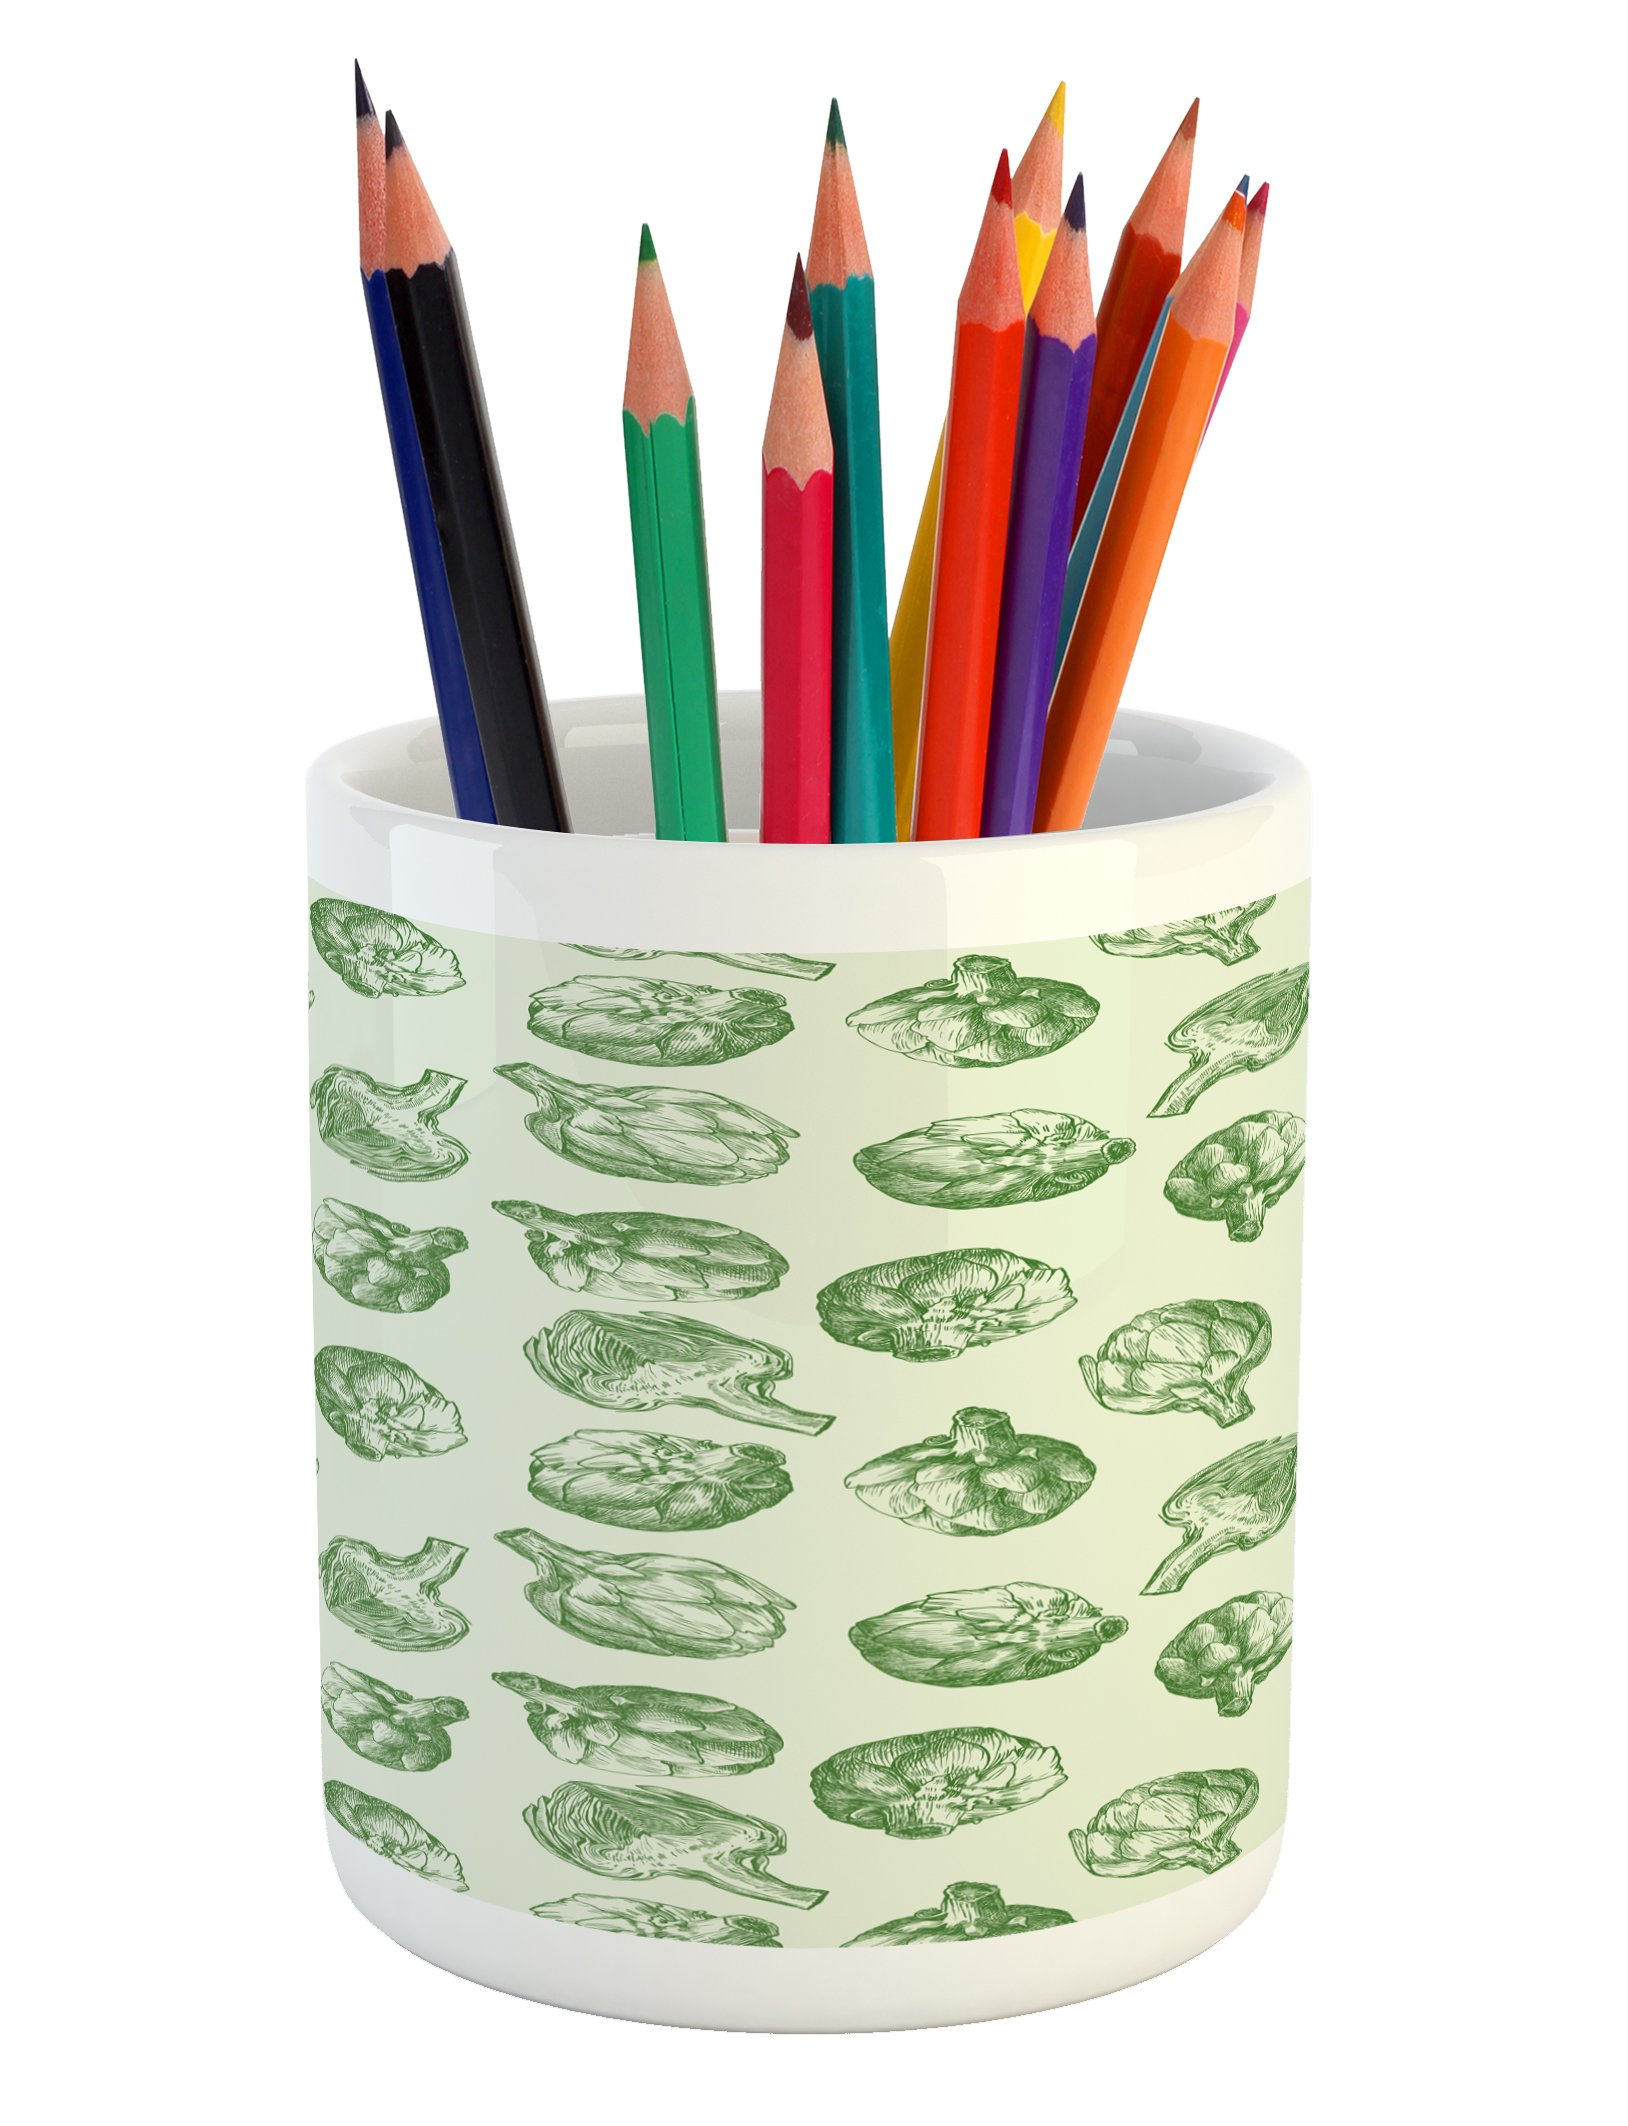 Ambesonne Artichoke Pencil Pen Holder, Fresh and Green Artichokes Hand Drawn Nature Agriculture Harvest Artwork Print, Printed Ceramic Pencil Pen Holder for Desk Office Accessory, Fern Green